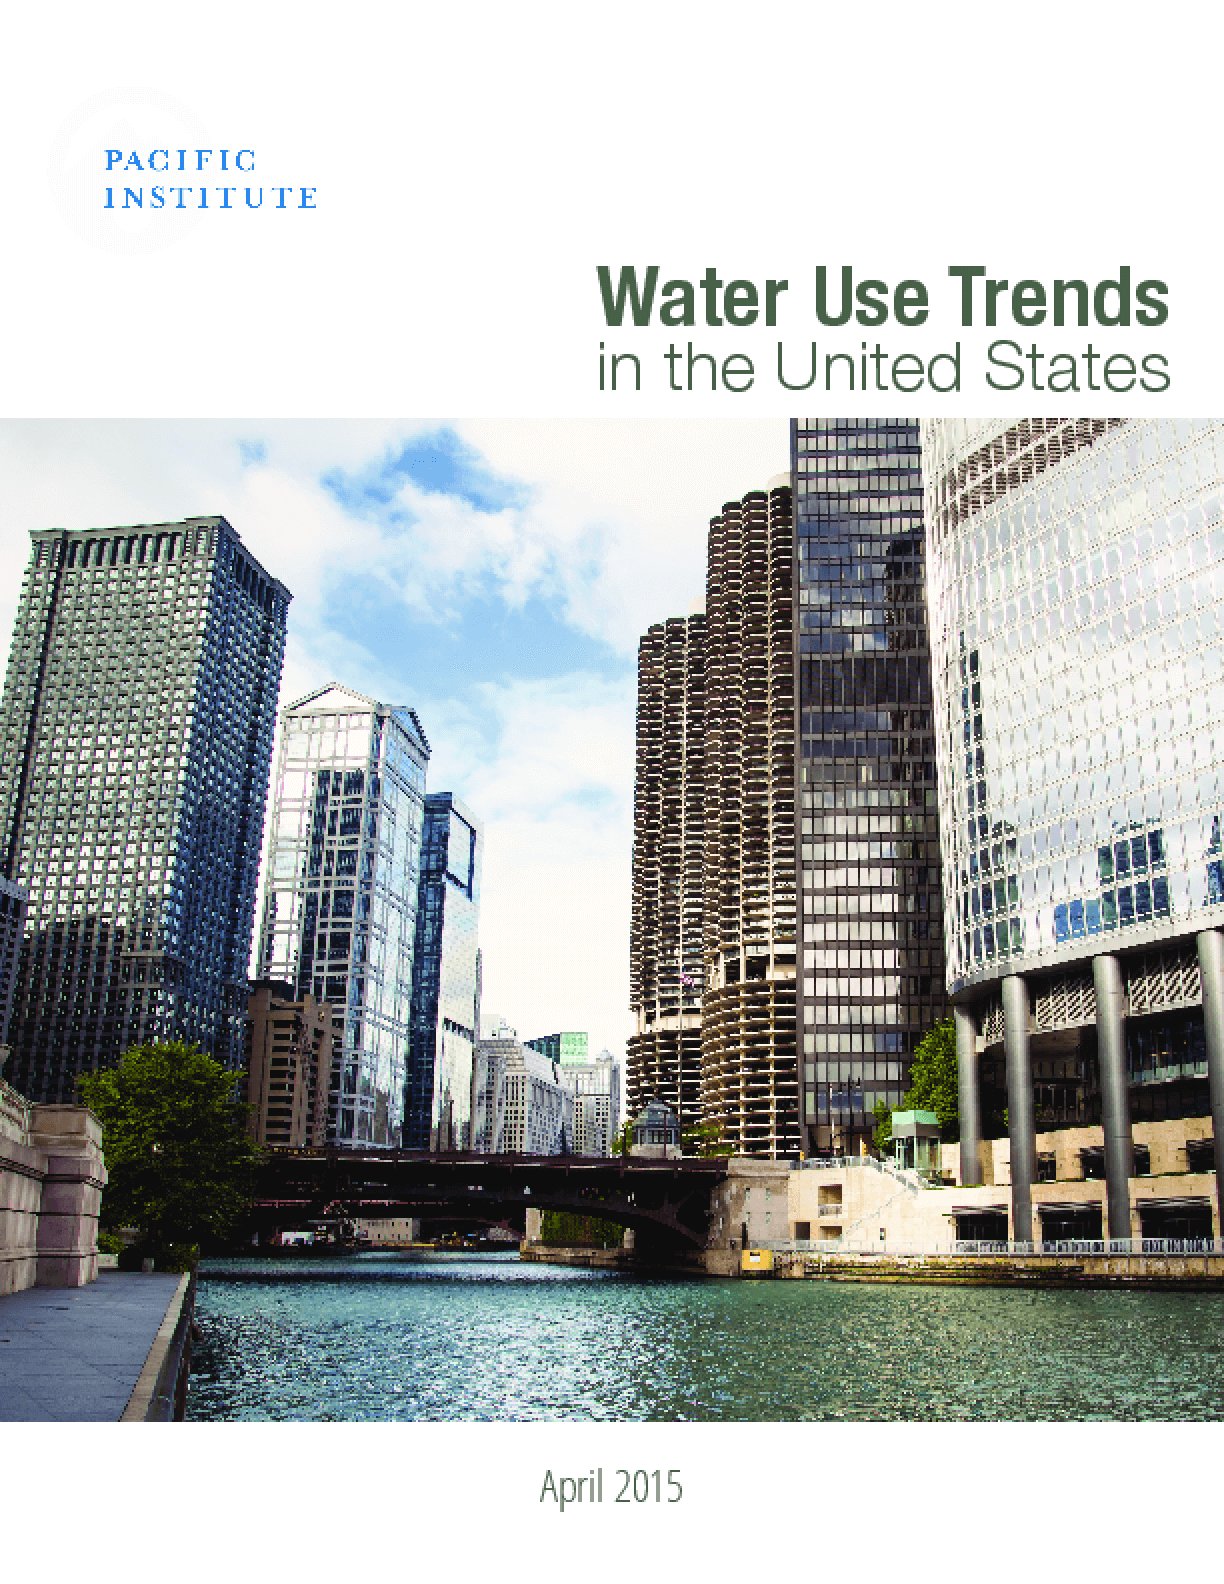 Water Use Trends in the United States